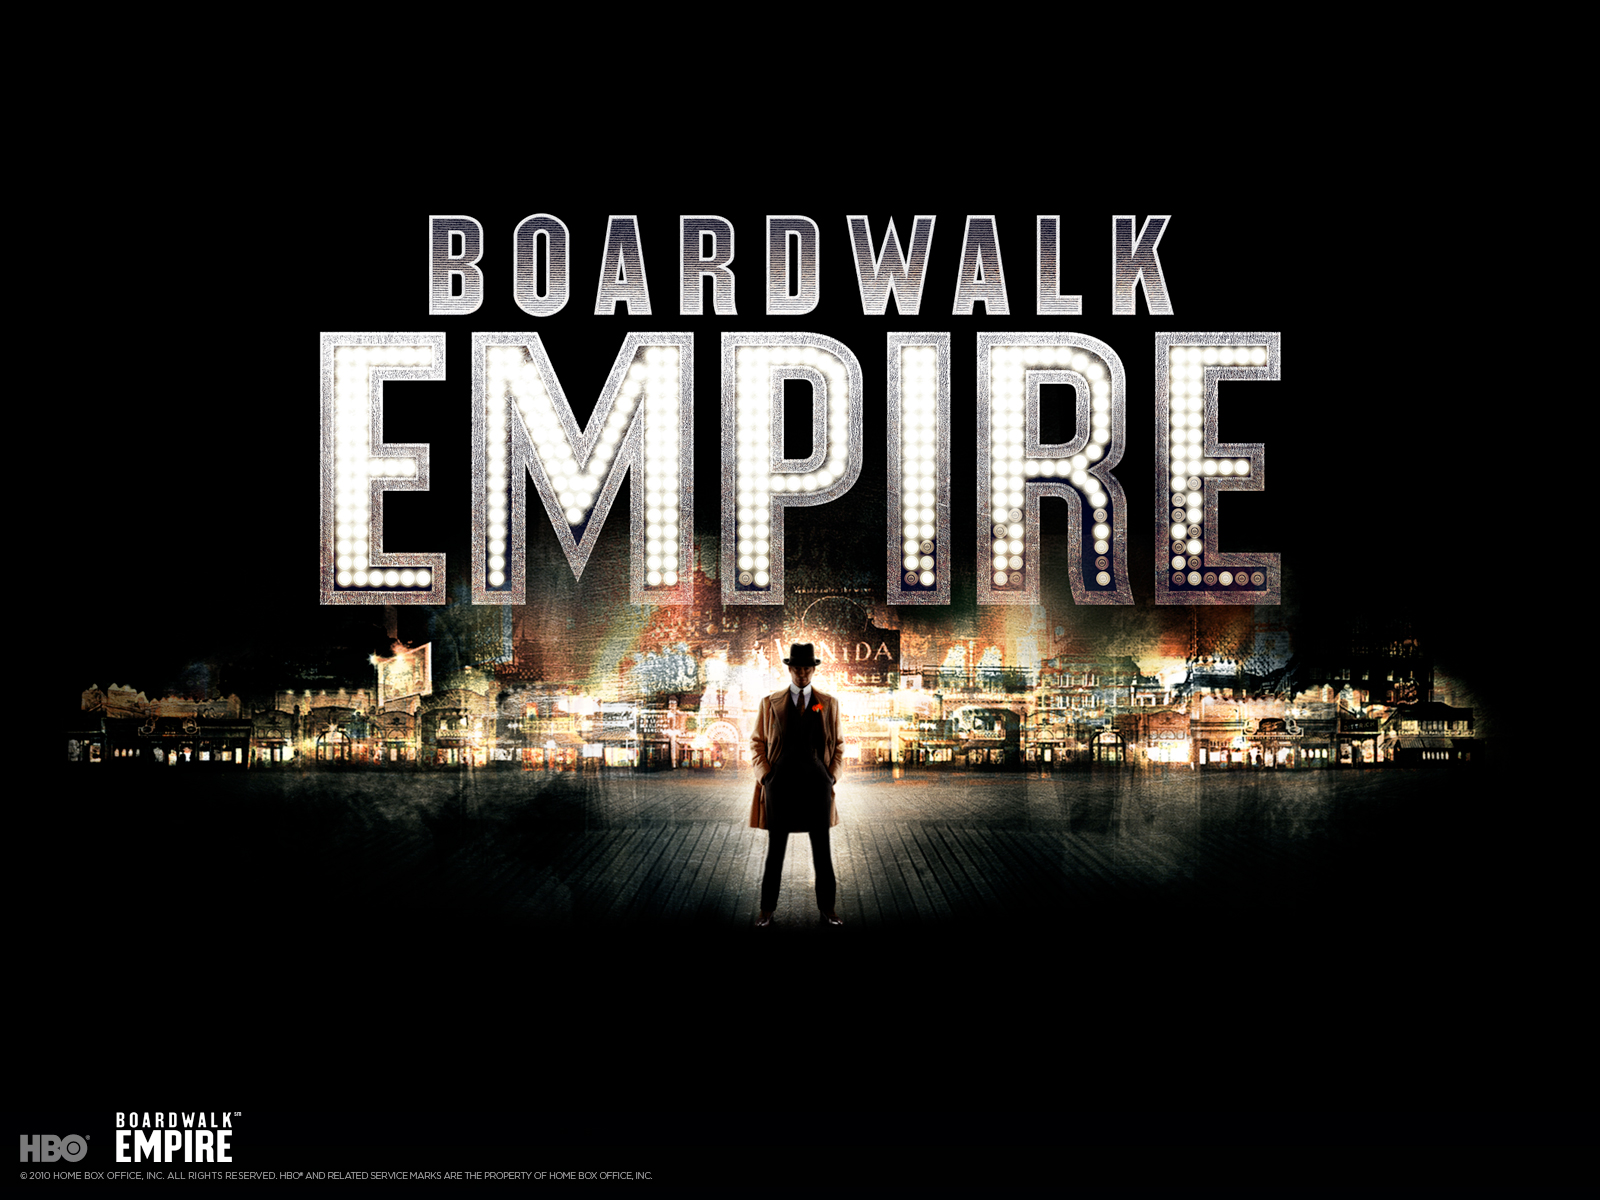 http://4.bp.blogspot.com/-ffgbrMQKuVU/TrEMq7aZLPI/AAAAAAAAAM8/TeuGmC2jnsc/s1600/boardwalk_empire_wallpaper_1600x1200_1.jpg